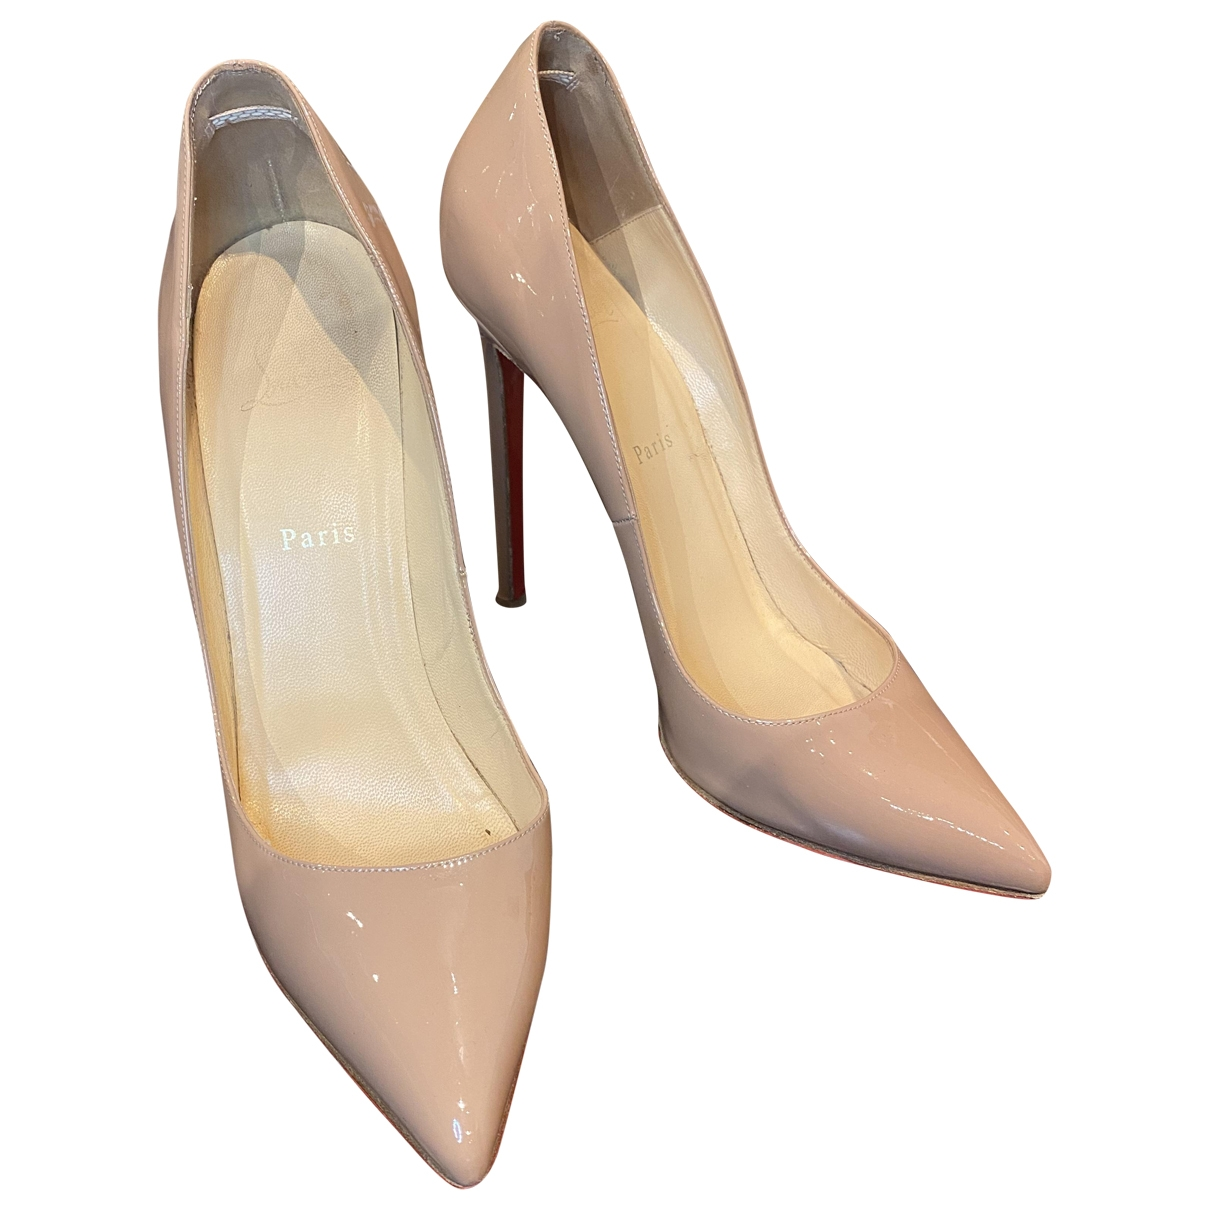 Christian Louboutin Pigalle Beige Patent leather Heels for Women 41 EU